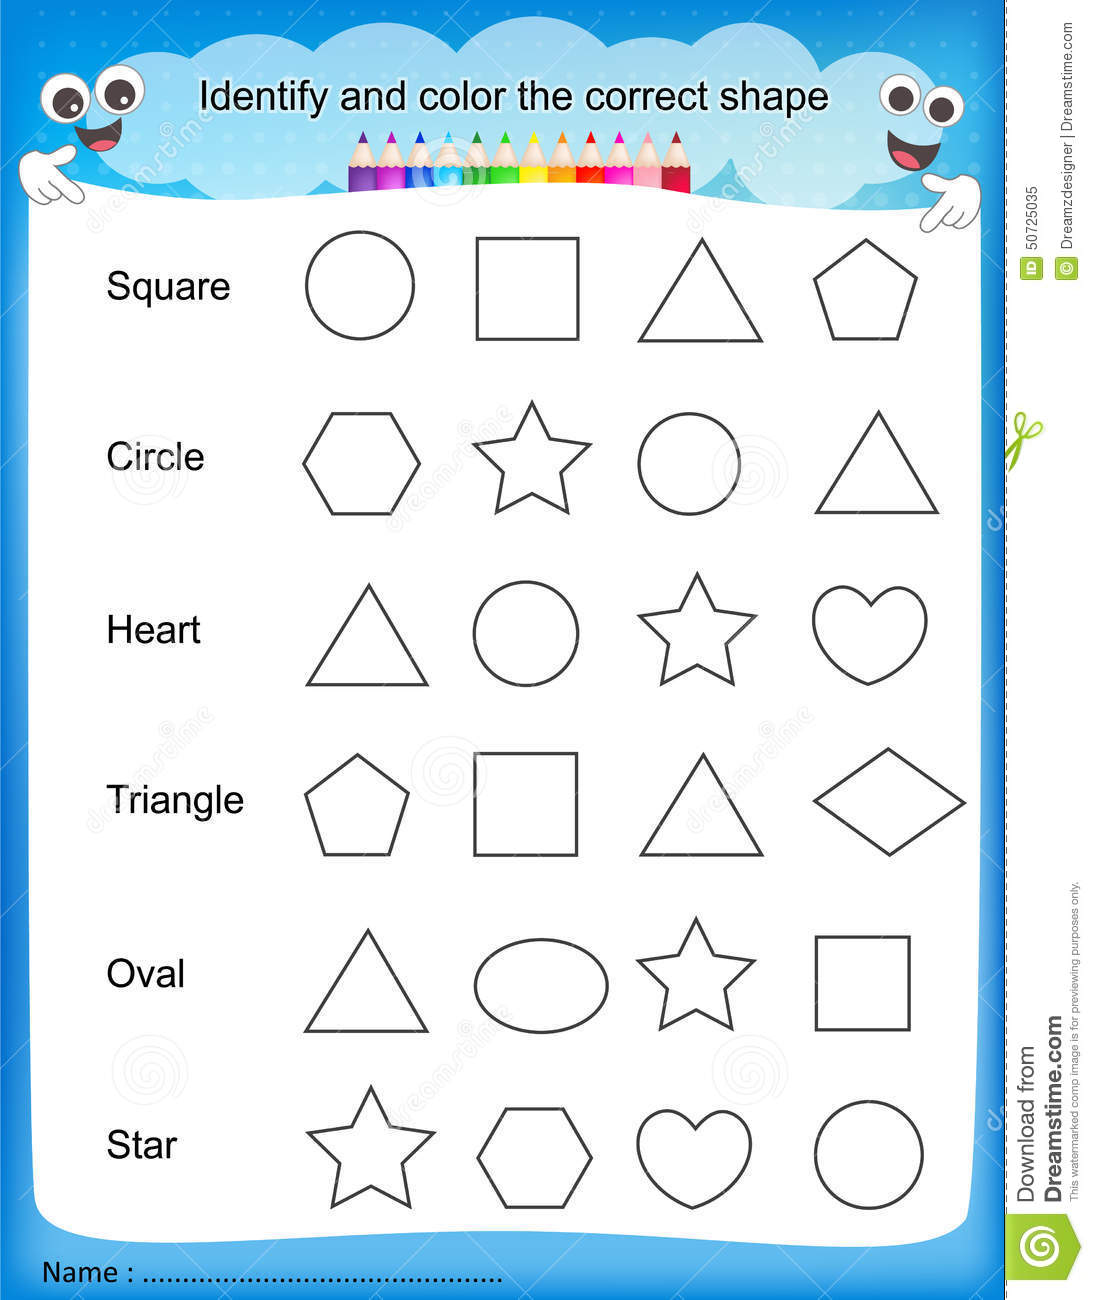 Worksheets Worksheets For Kindergarden drawing worksheet for kindergarten at getdrawings com free 1094x1300 colors worksheets yaqutlab worksheet